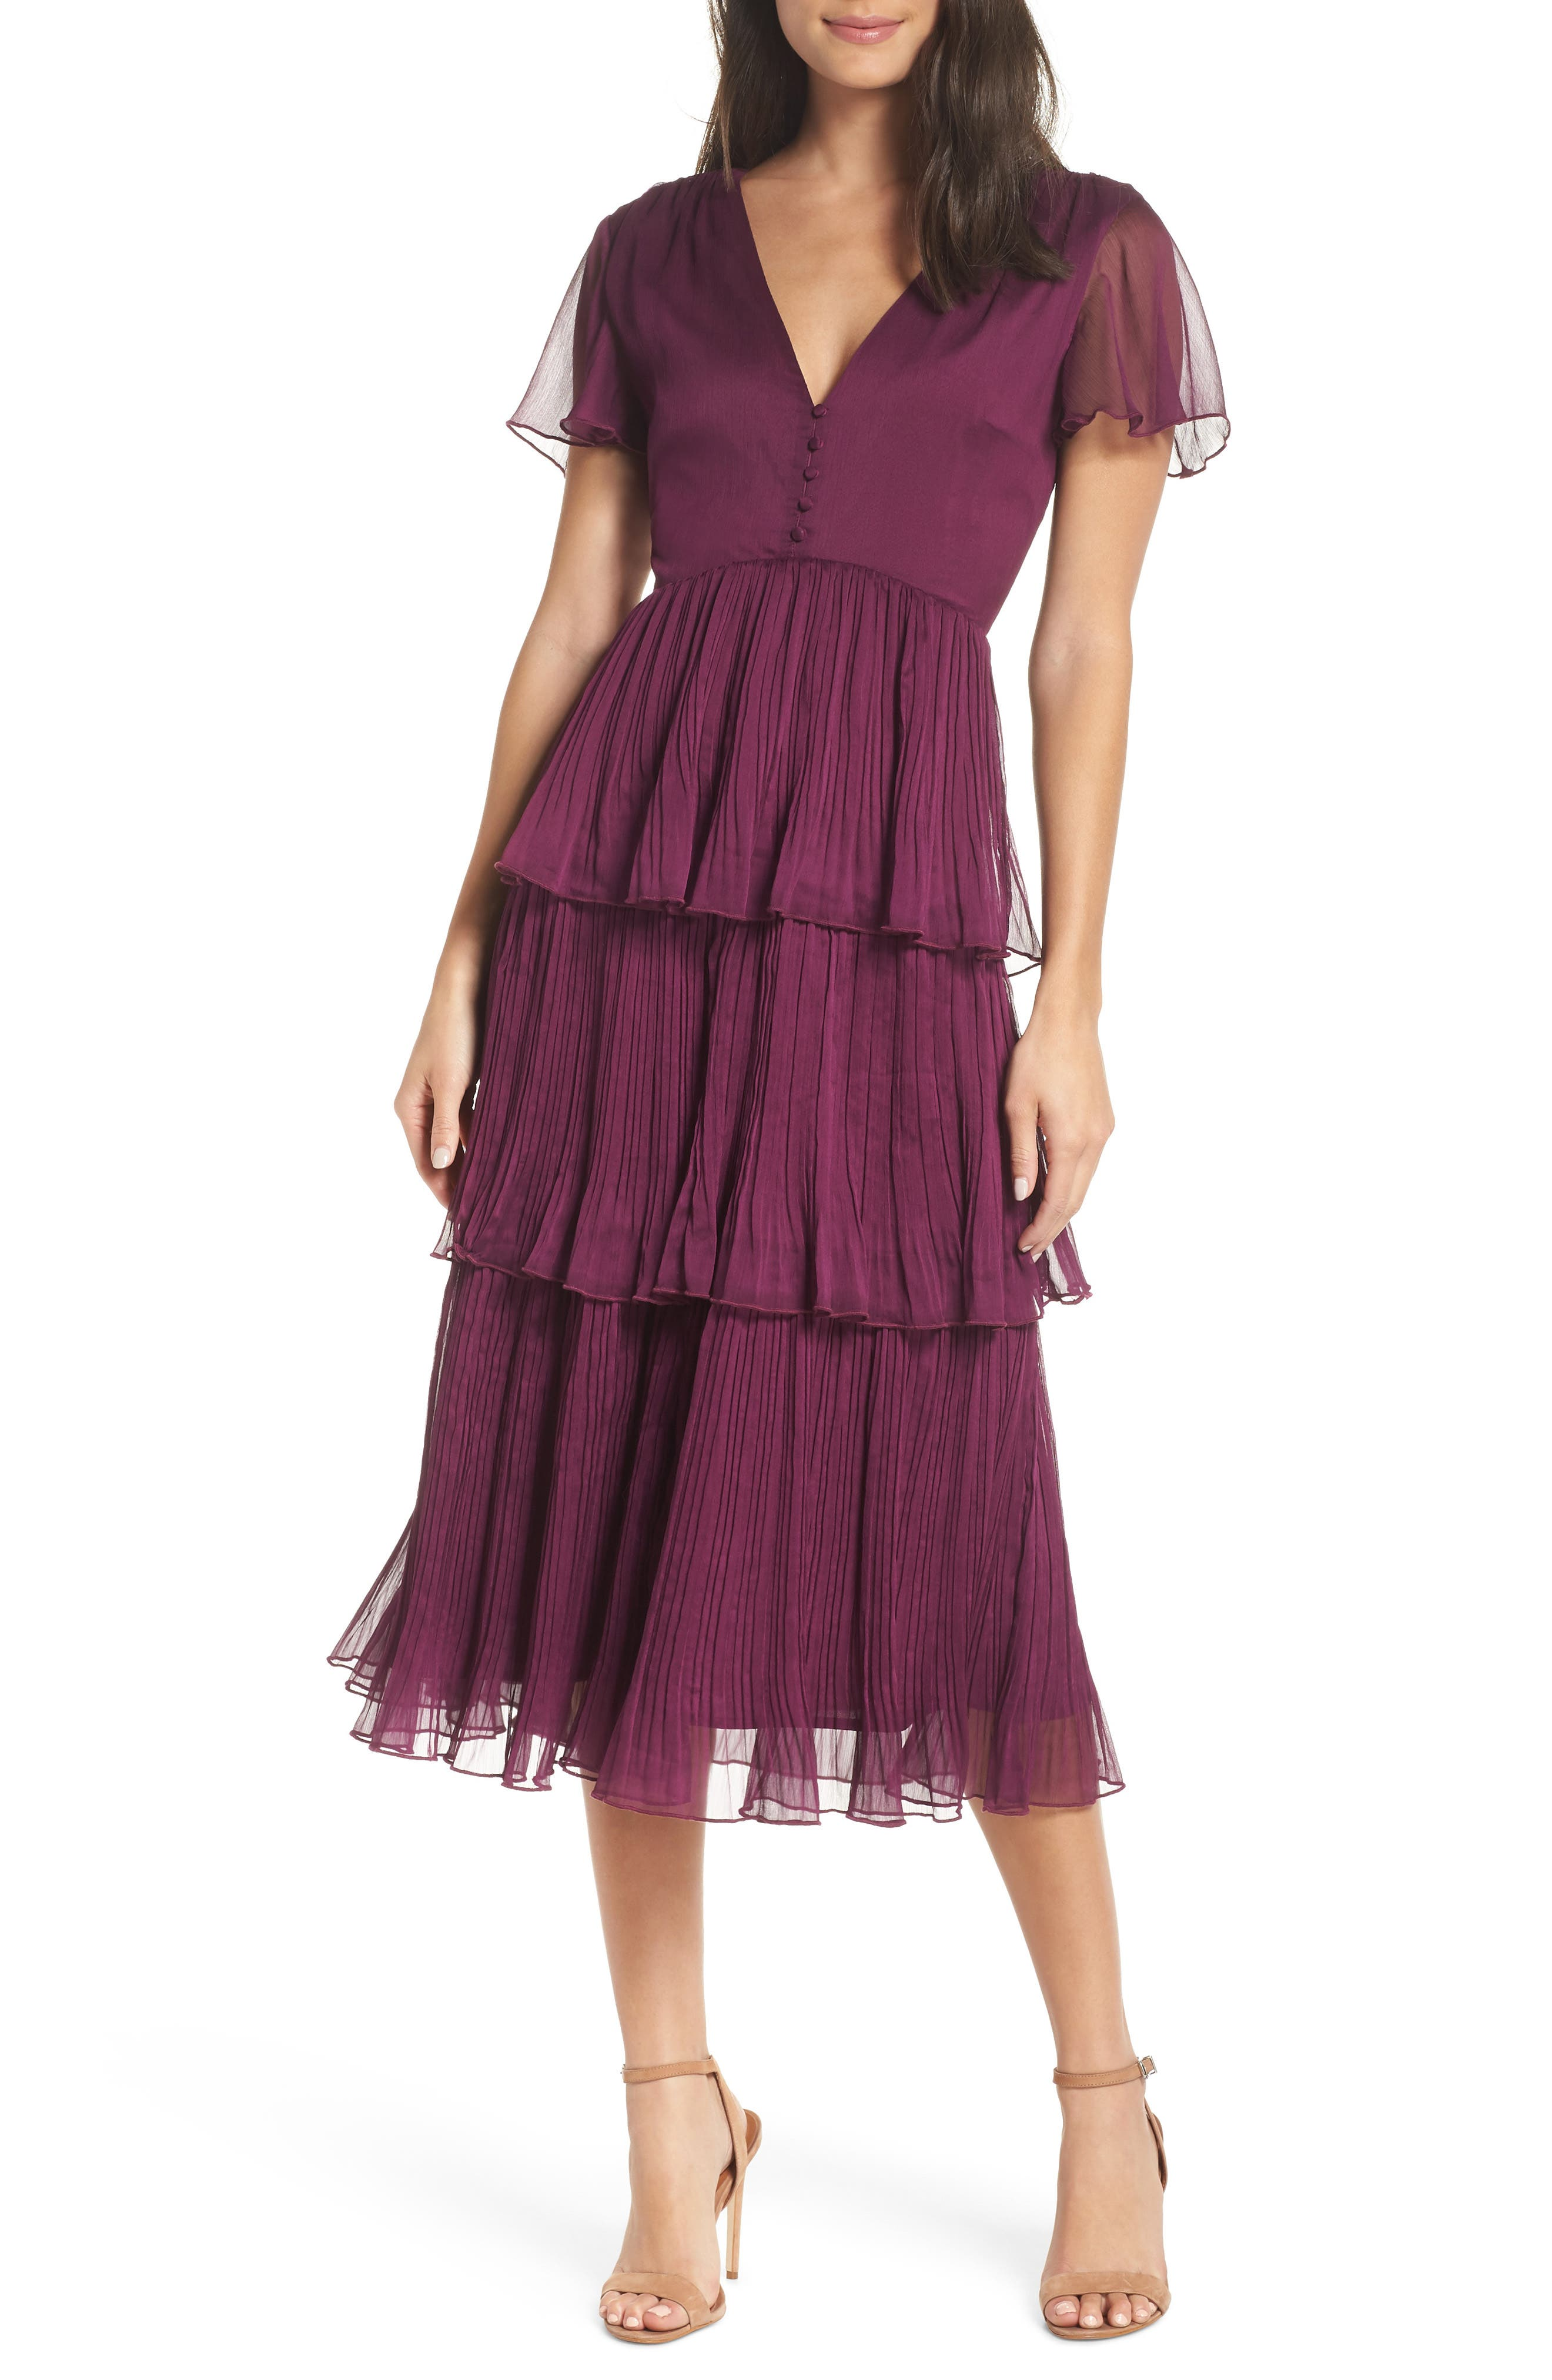 Tiered Skirt Midi Dress,                             Main thumbnail 1, color,                             PURPLE DARK